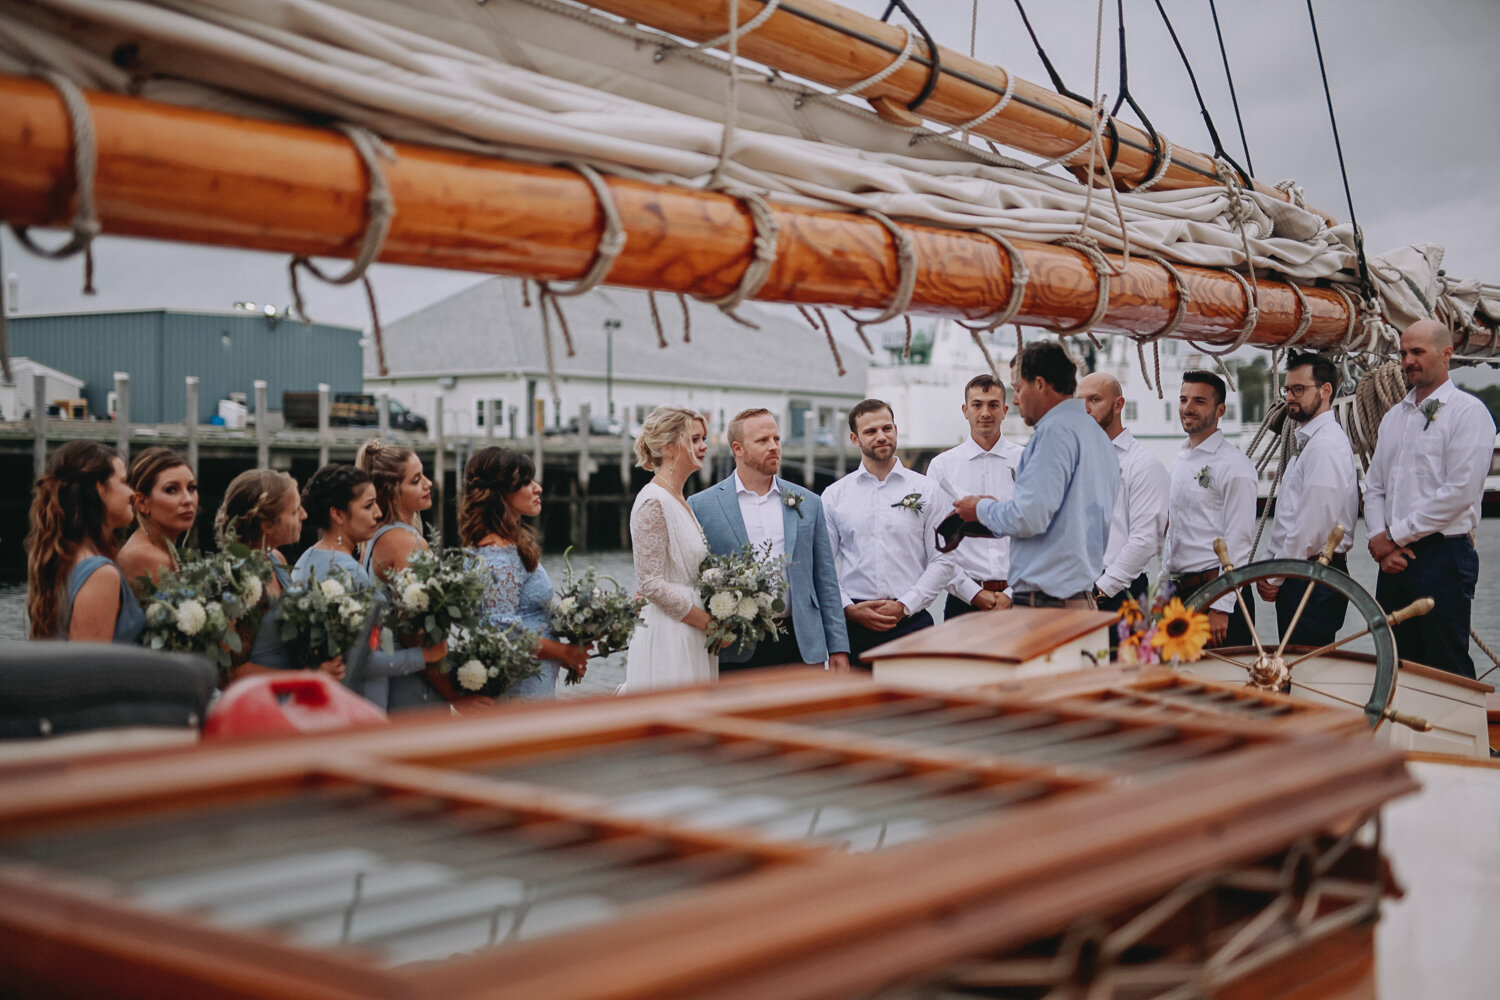 Our captain is licensed to perform wedding ceremonies. Photo: Closer North